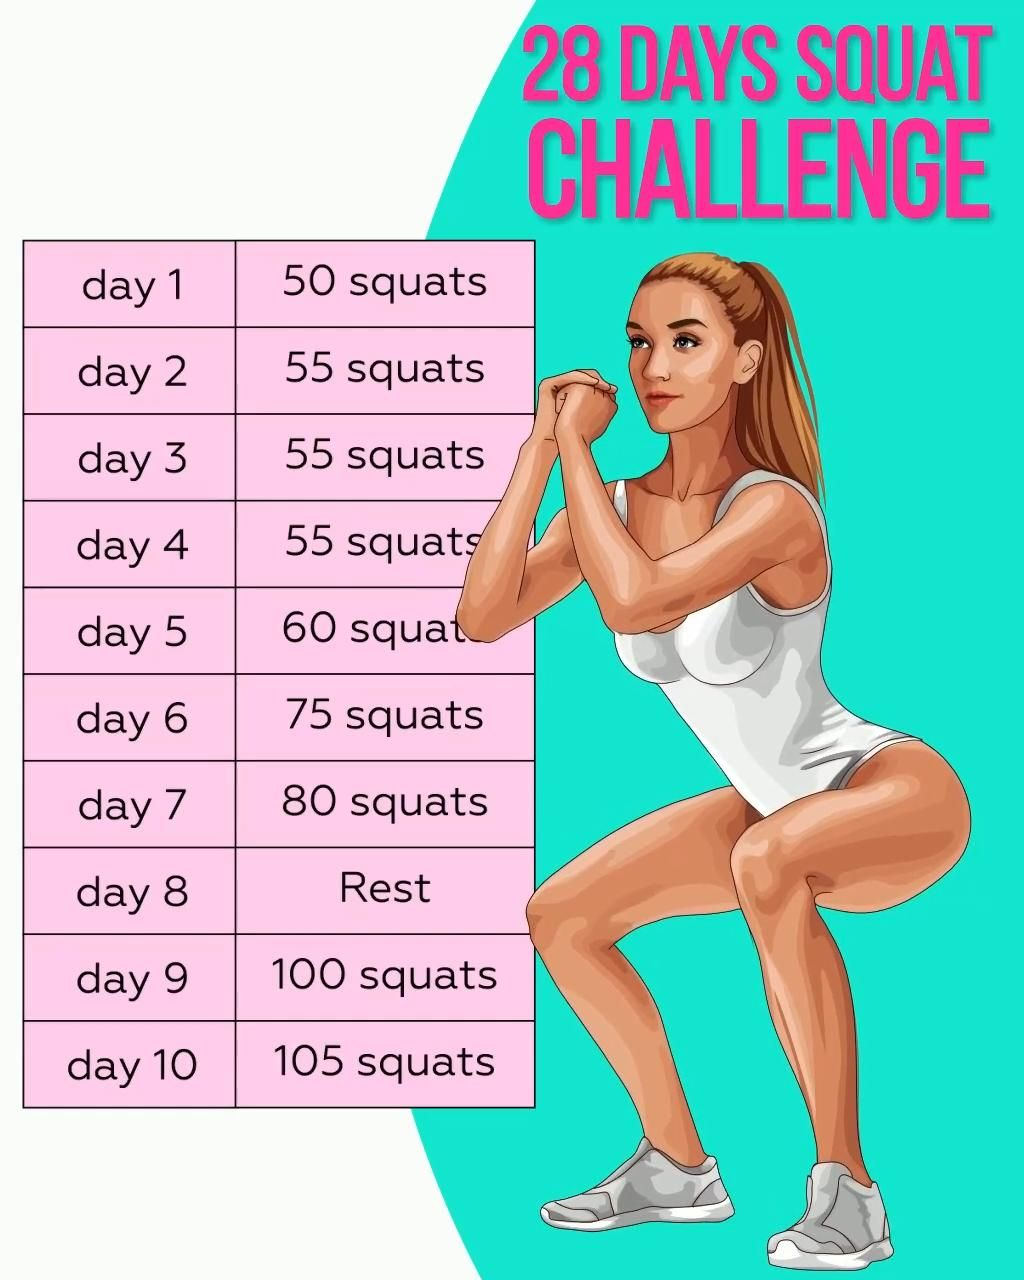 How Many Calories Does A Squat Burn And Should You Keep Busting Them Out?